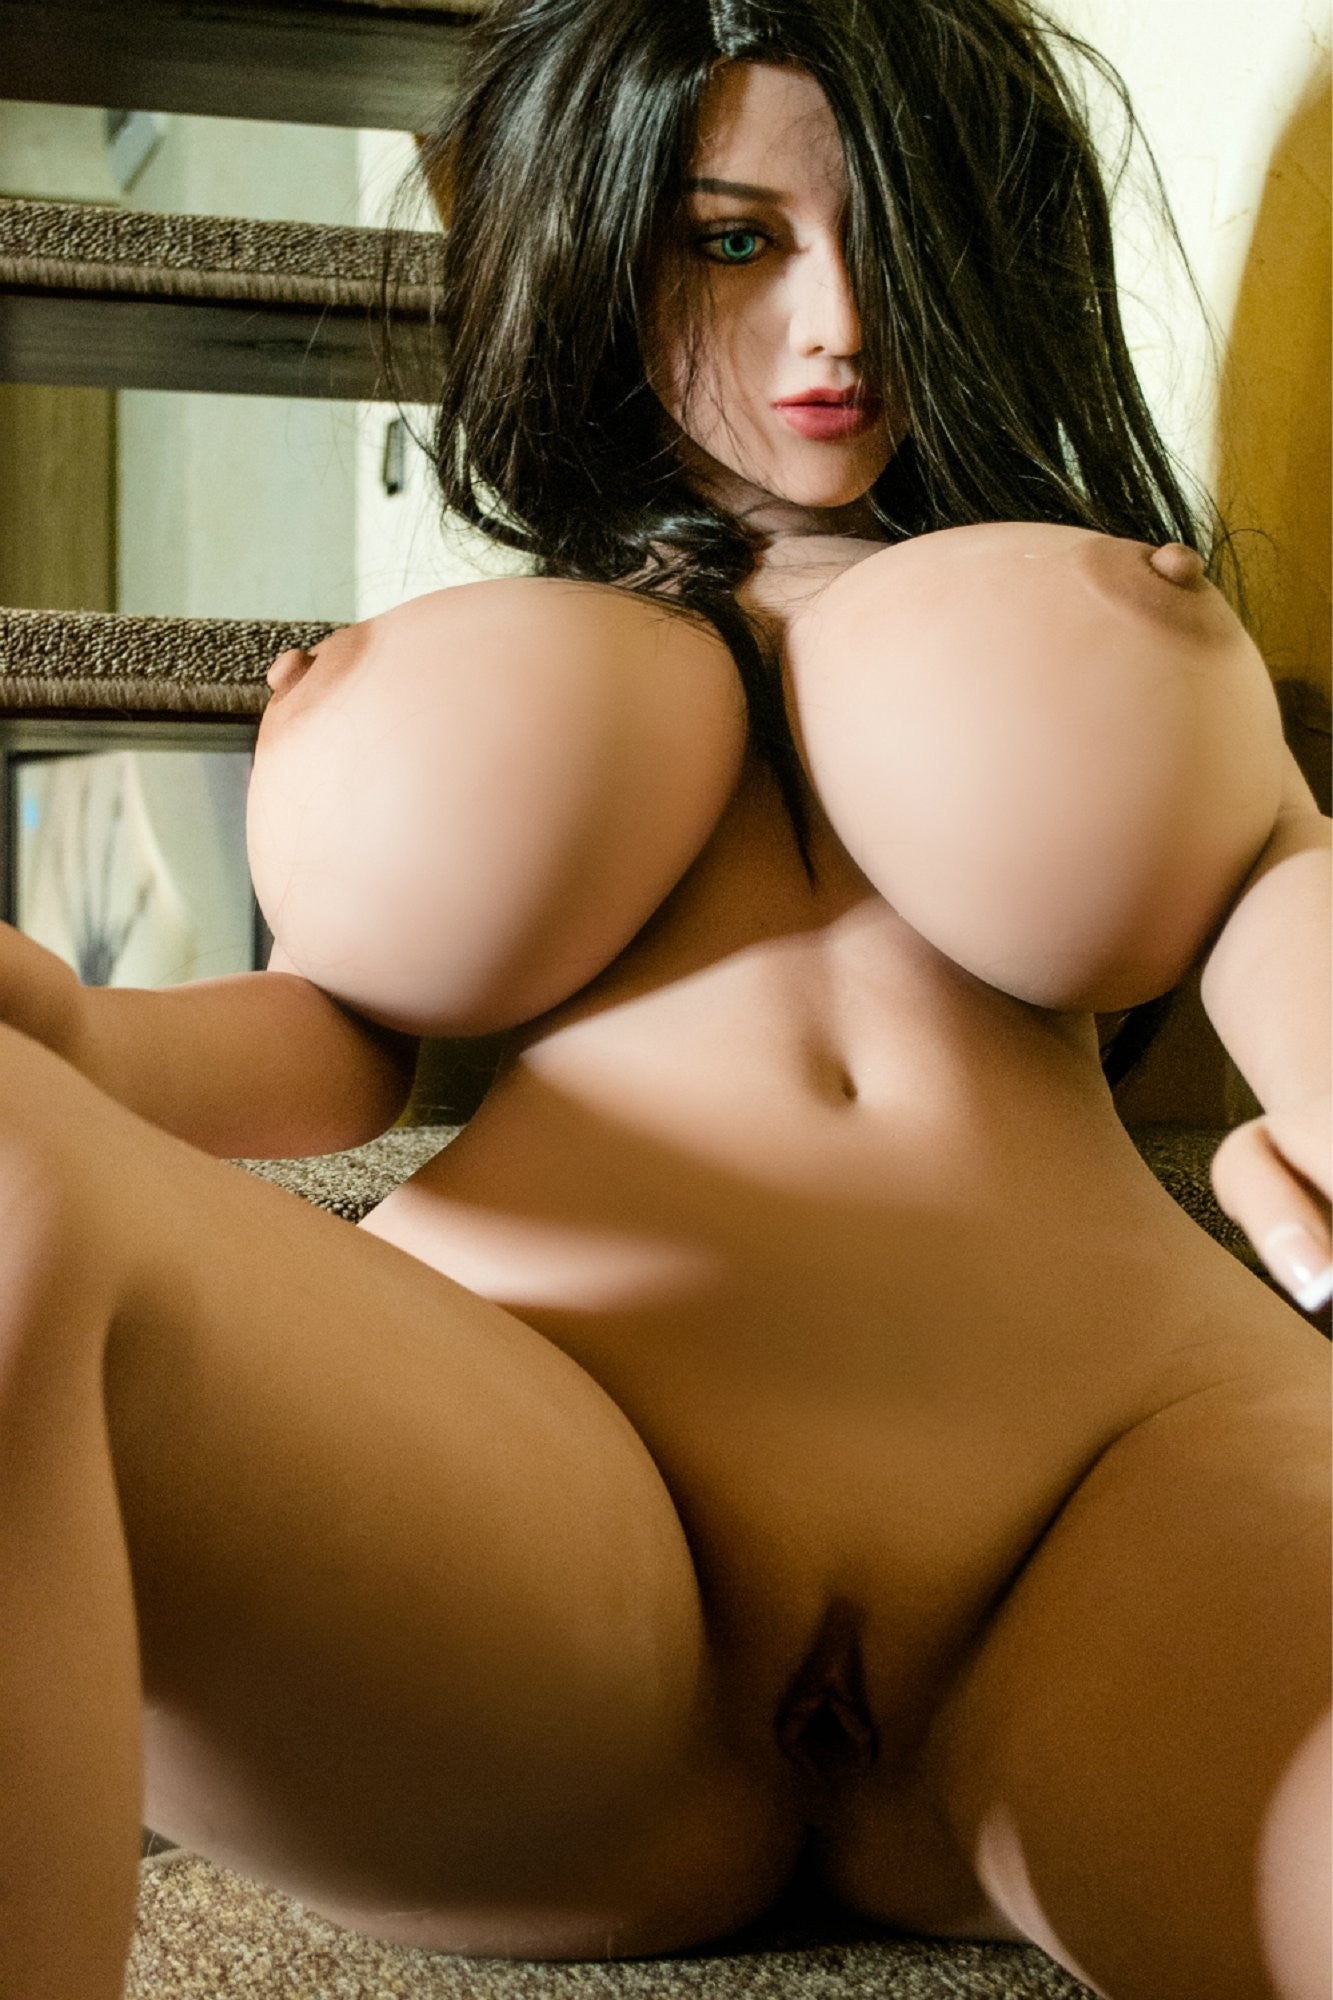 Big Ass And Breasts 57